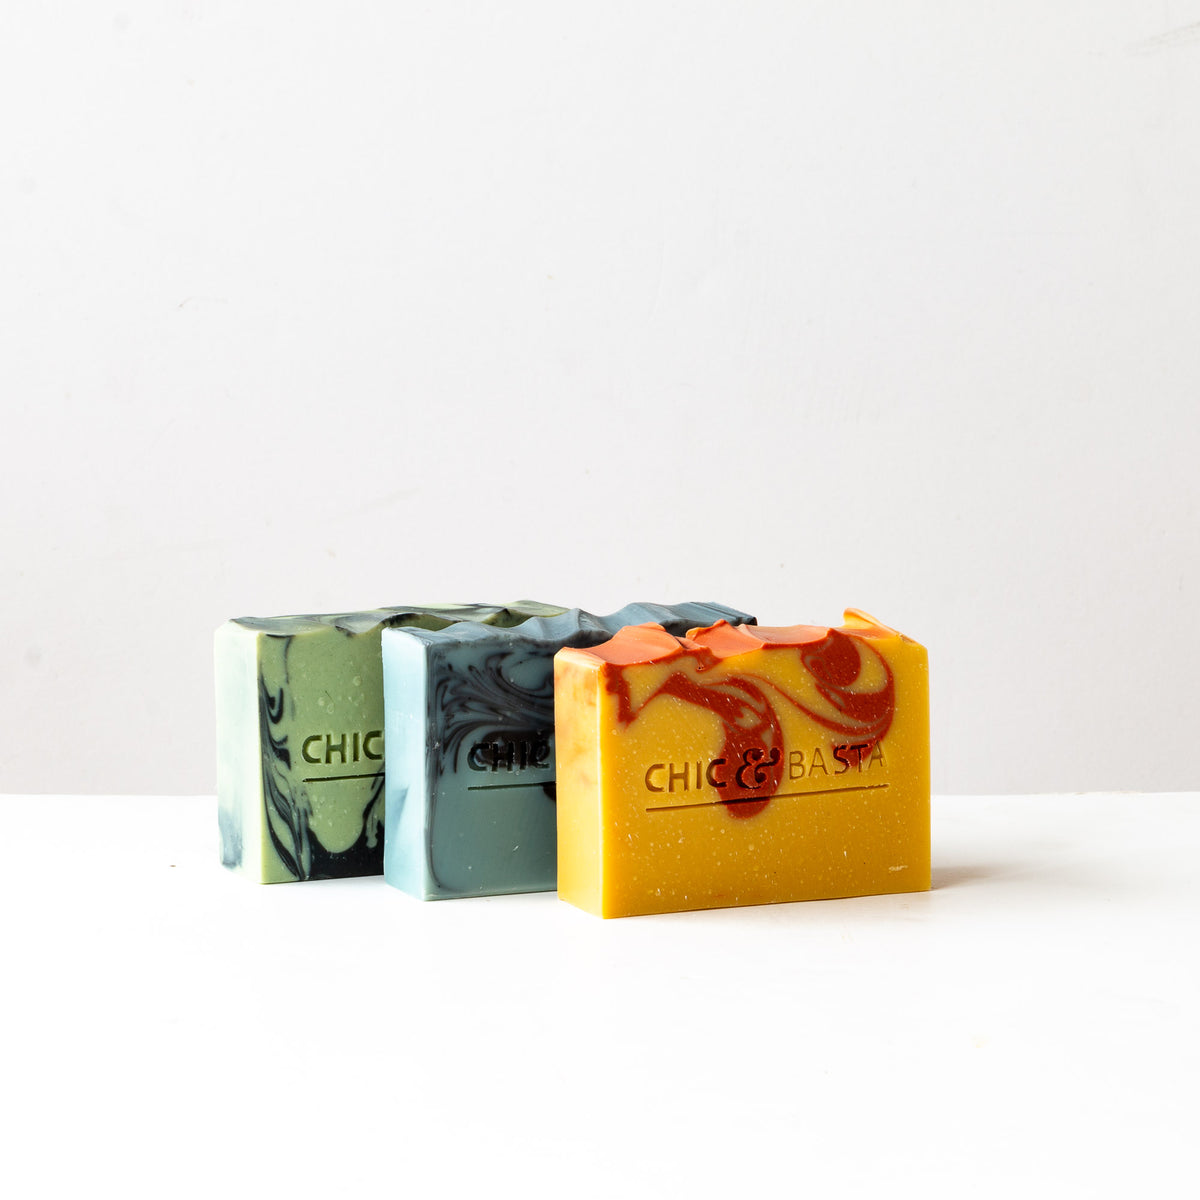 These soaps are the result of a collaboration with Amélie Roy of Ameol.